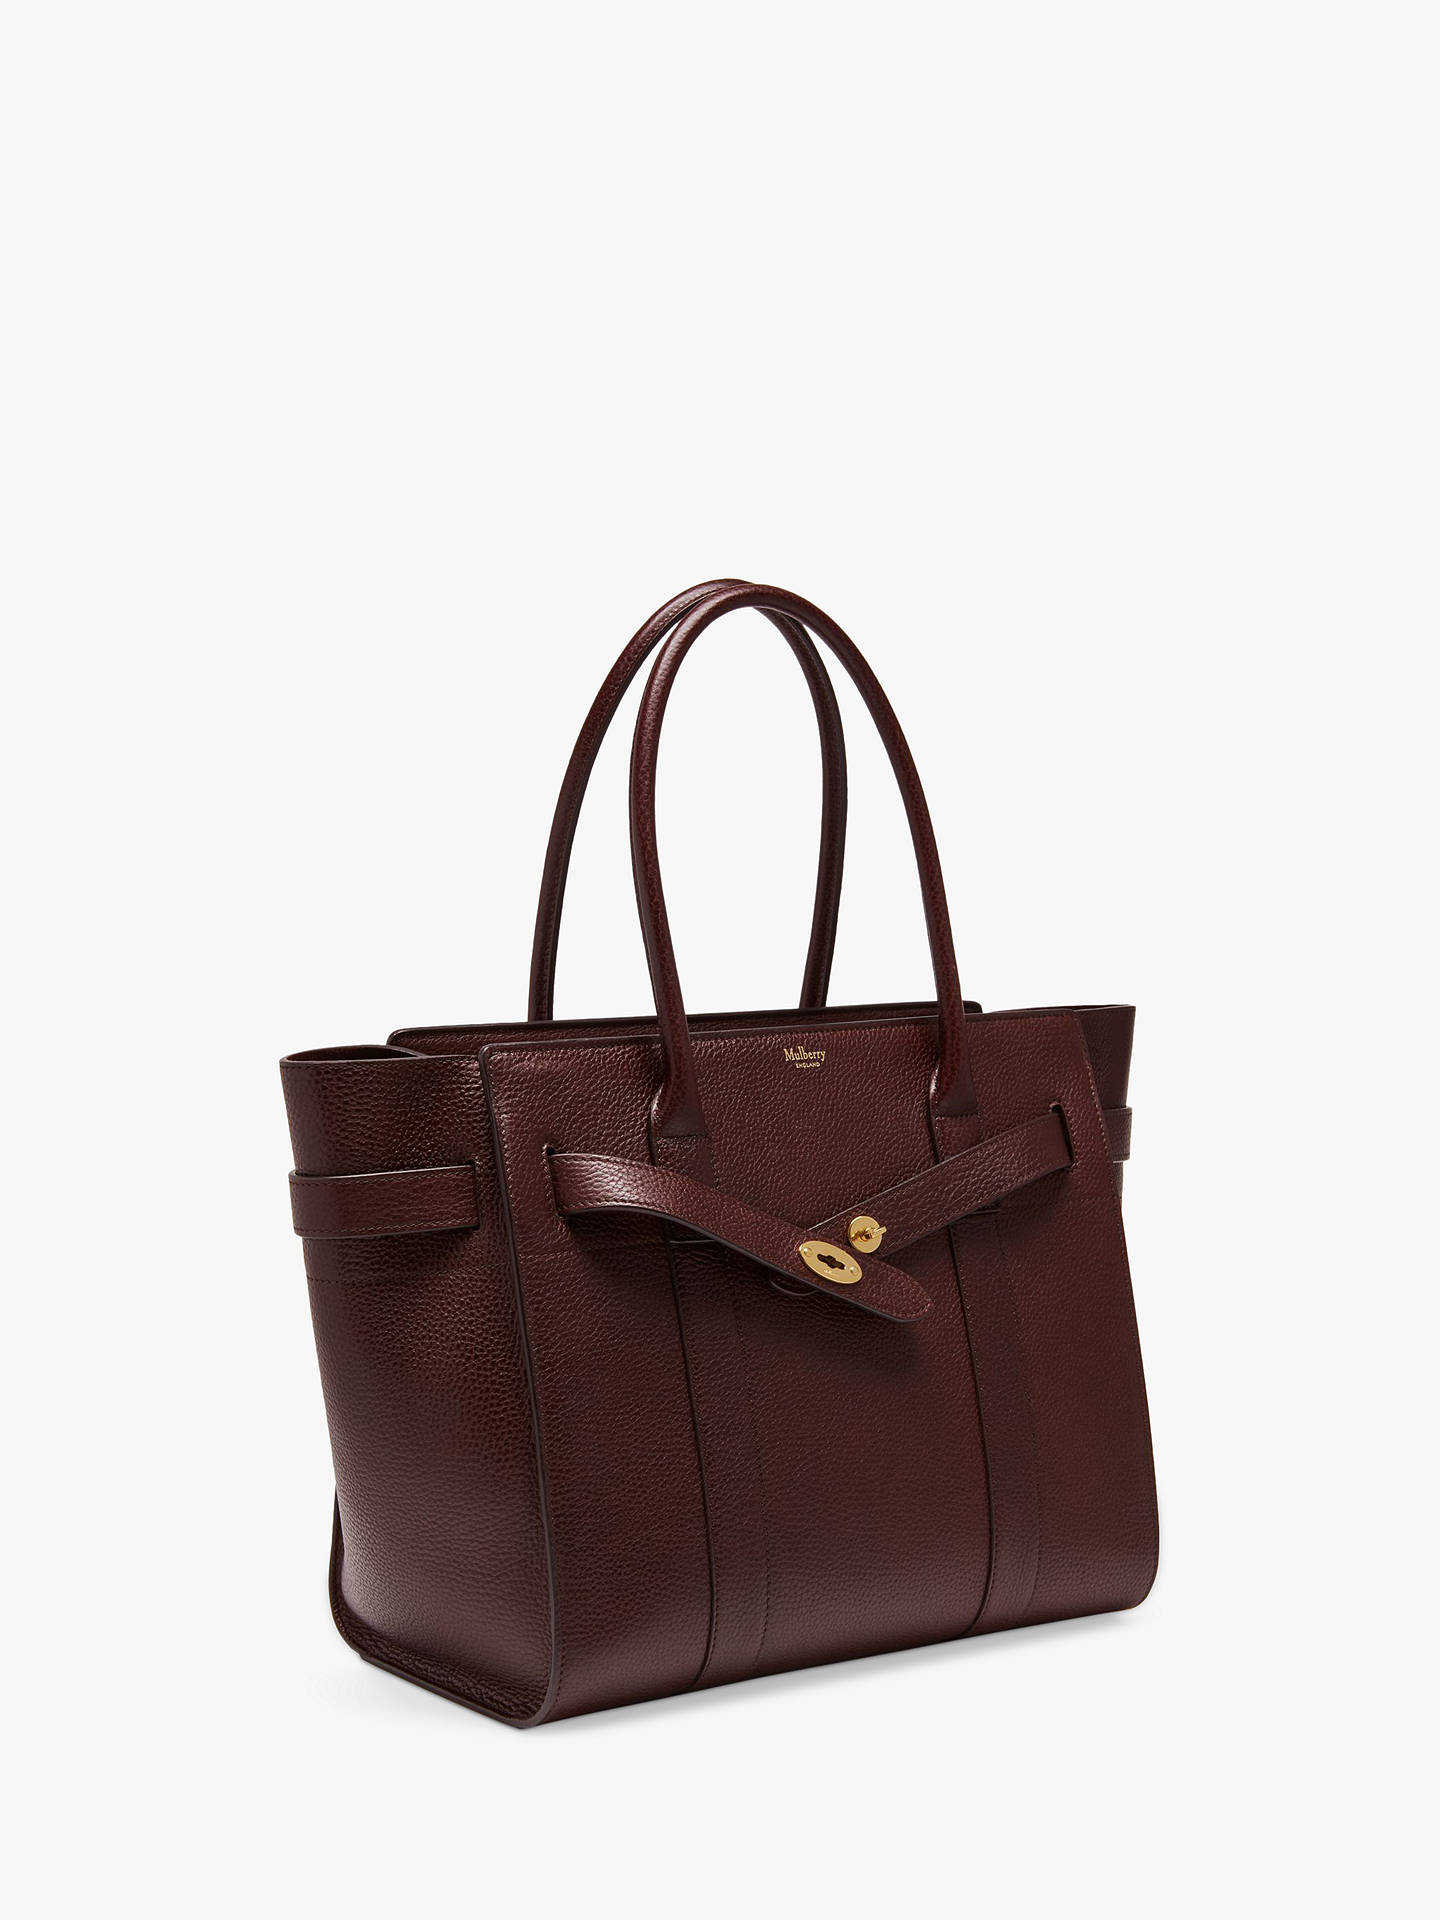 116f5e6effcb Mulberry Bayswater Zipped Grain Veg Tanned Leather Tote Bag at John ...